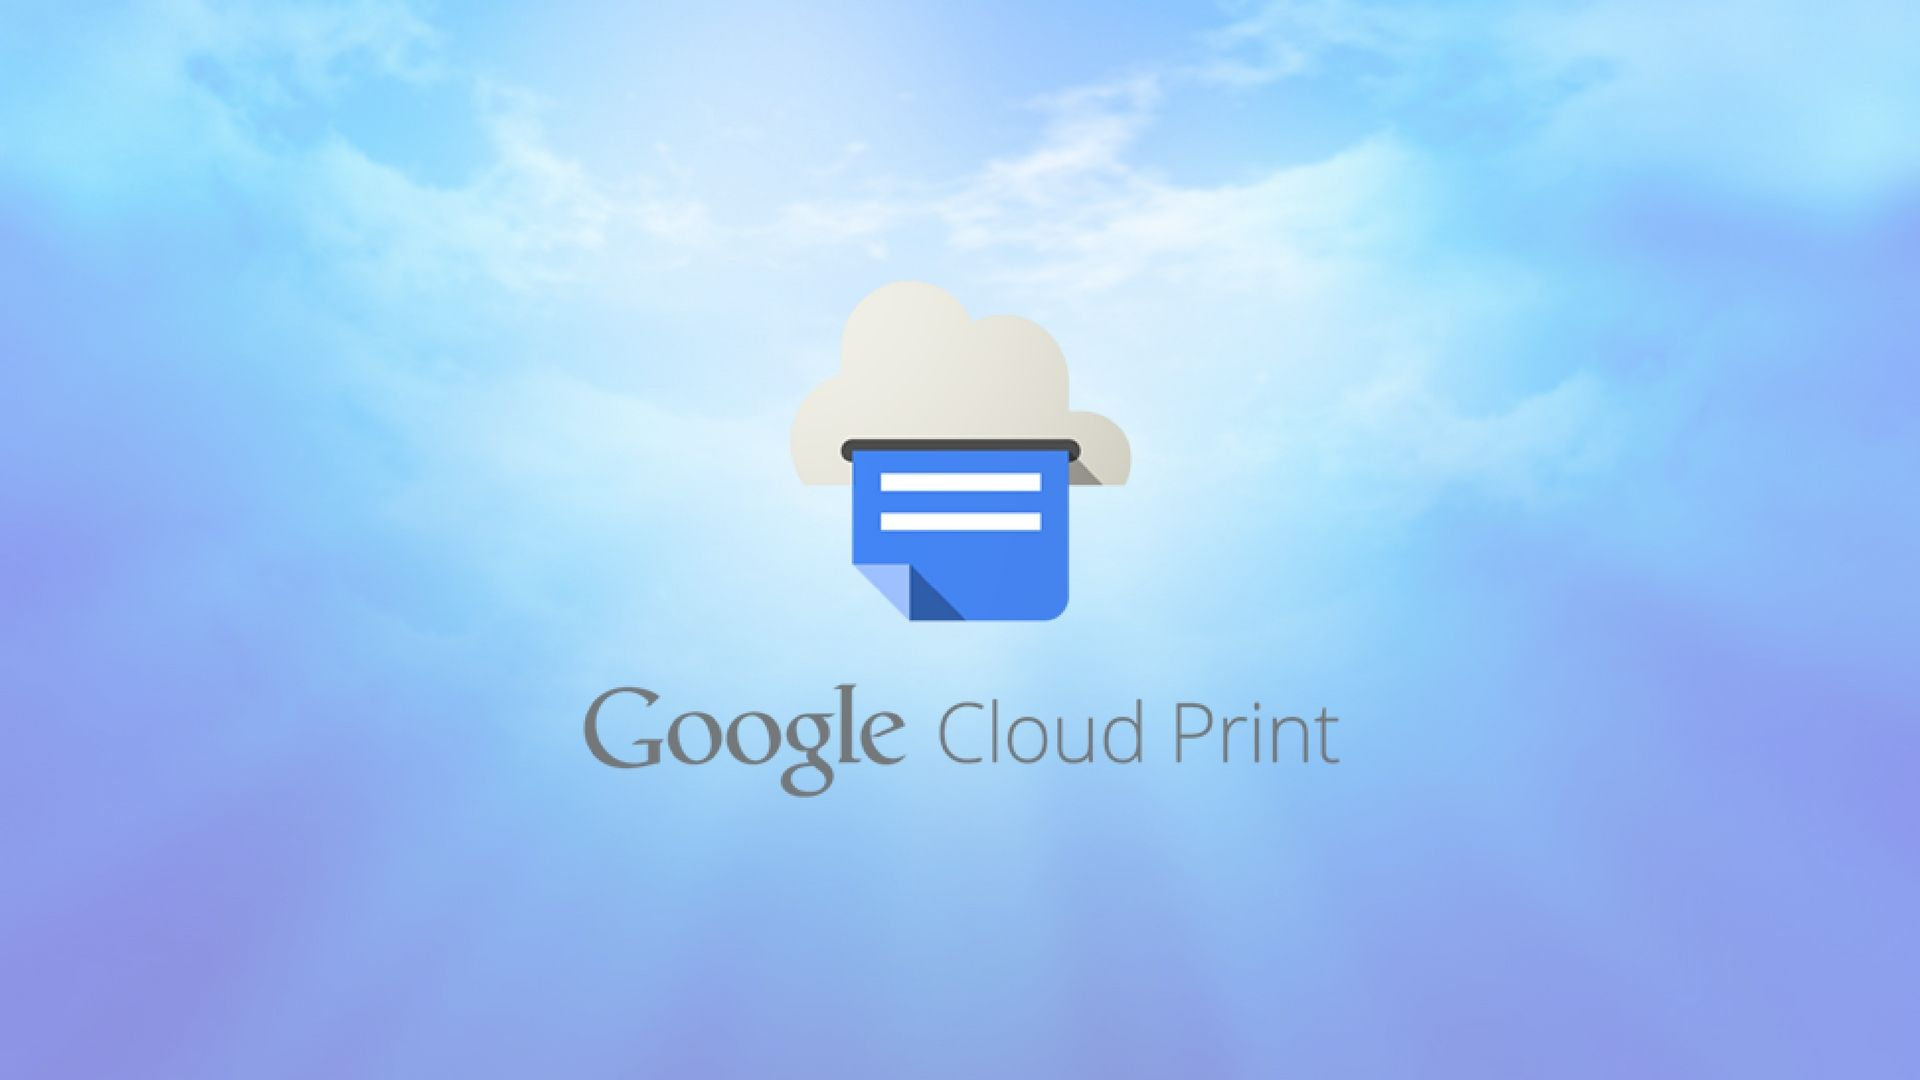 Print Using Google Cloud From Your Android Or IOS Device